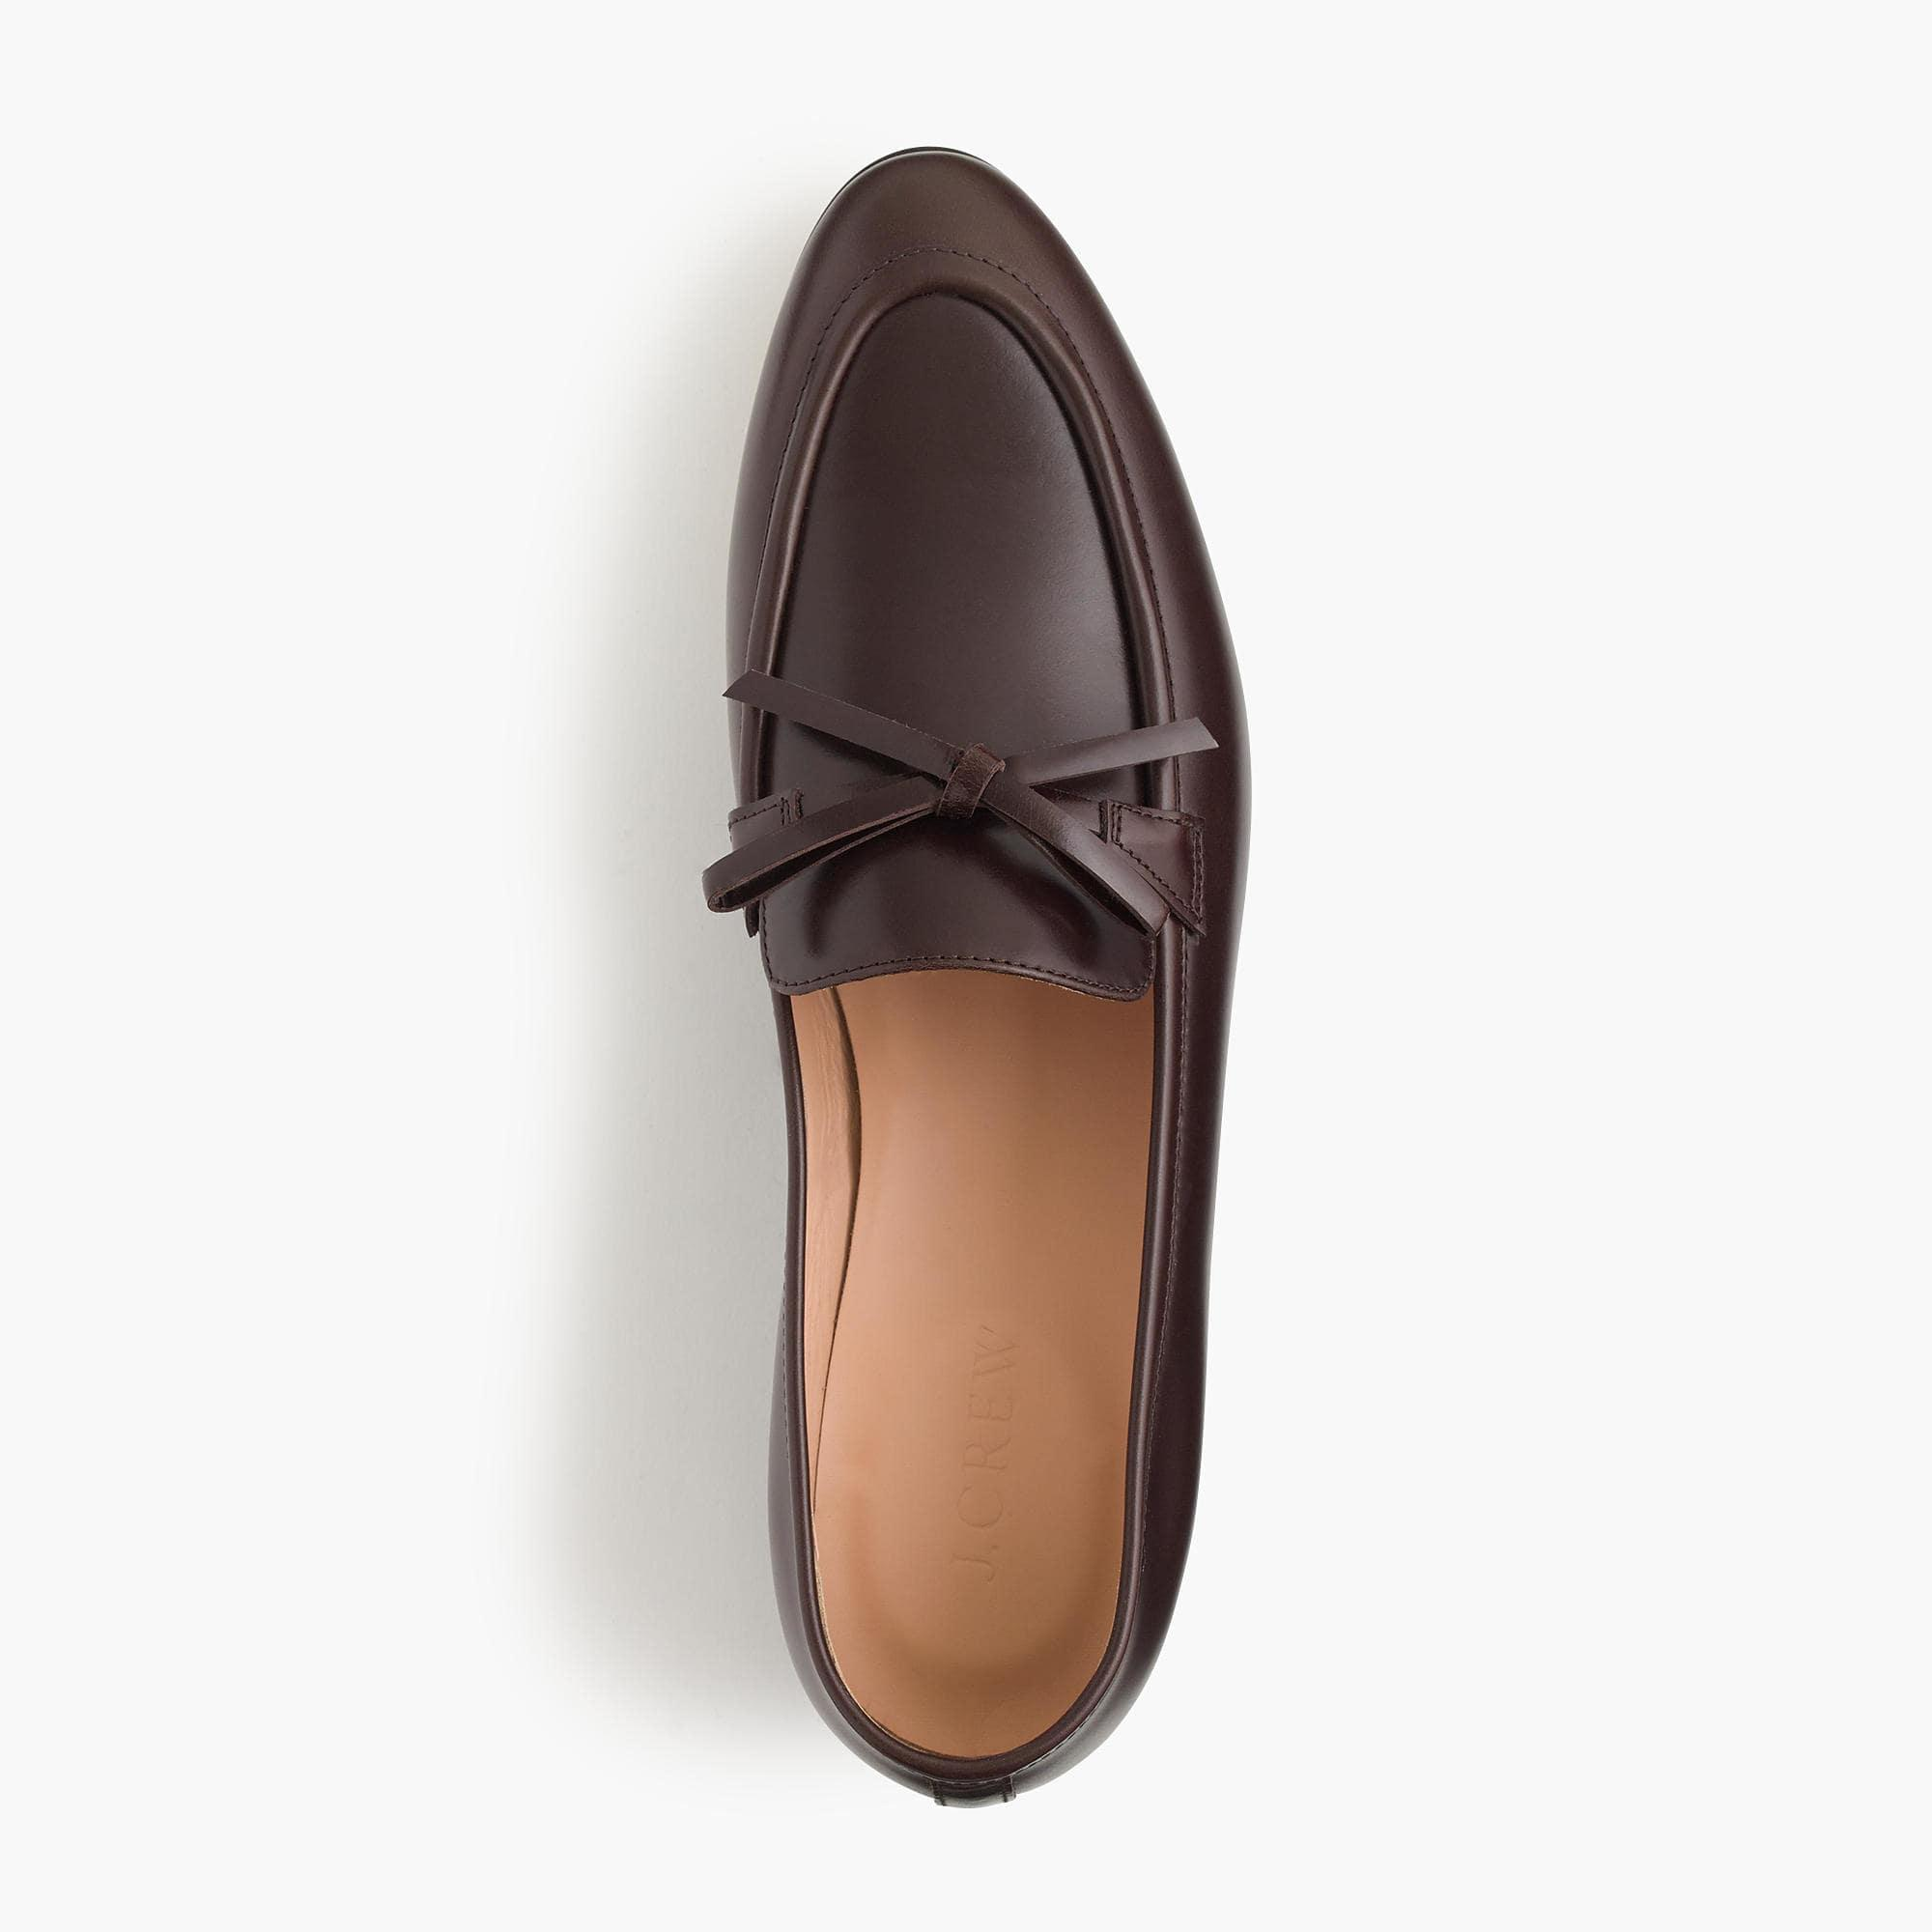 d4c78ecc3f7 J.Crew Academy Loafers In Leather in Brown - Lyst